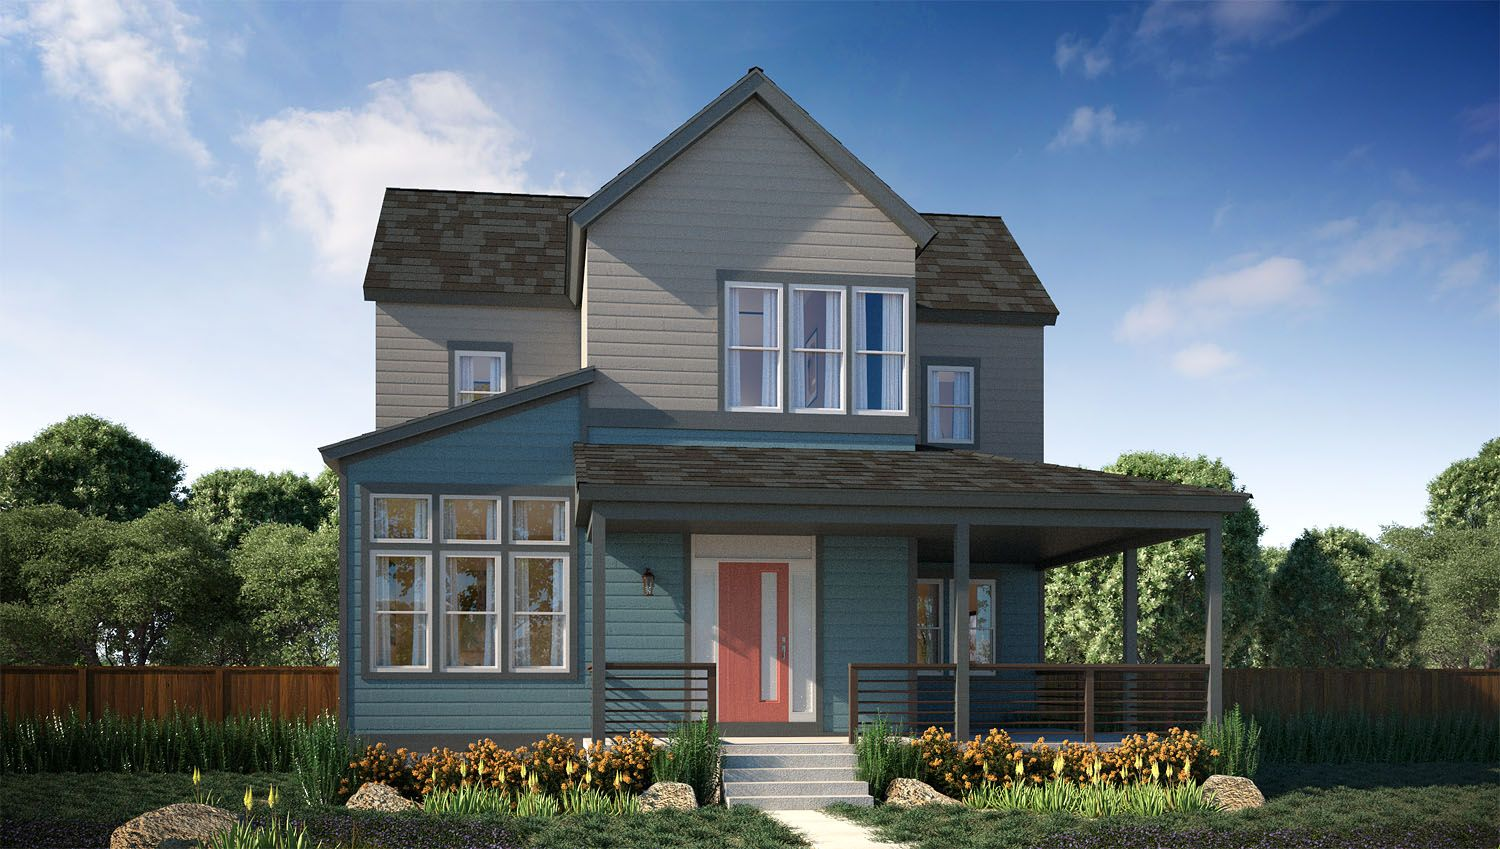 Thrive home builders stapleton vita collection at for Thrive homes denver